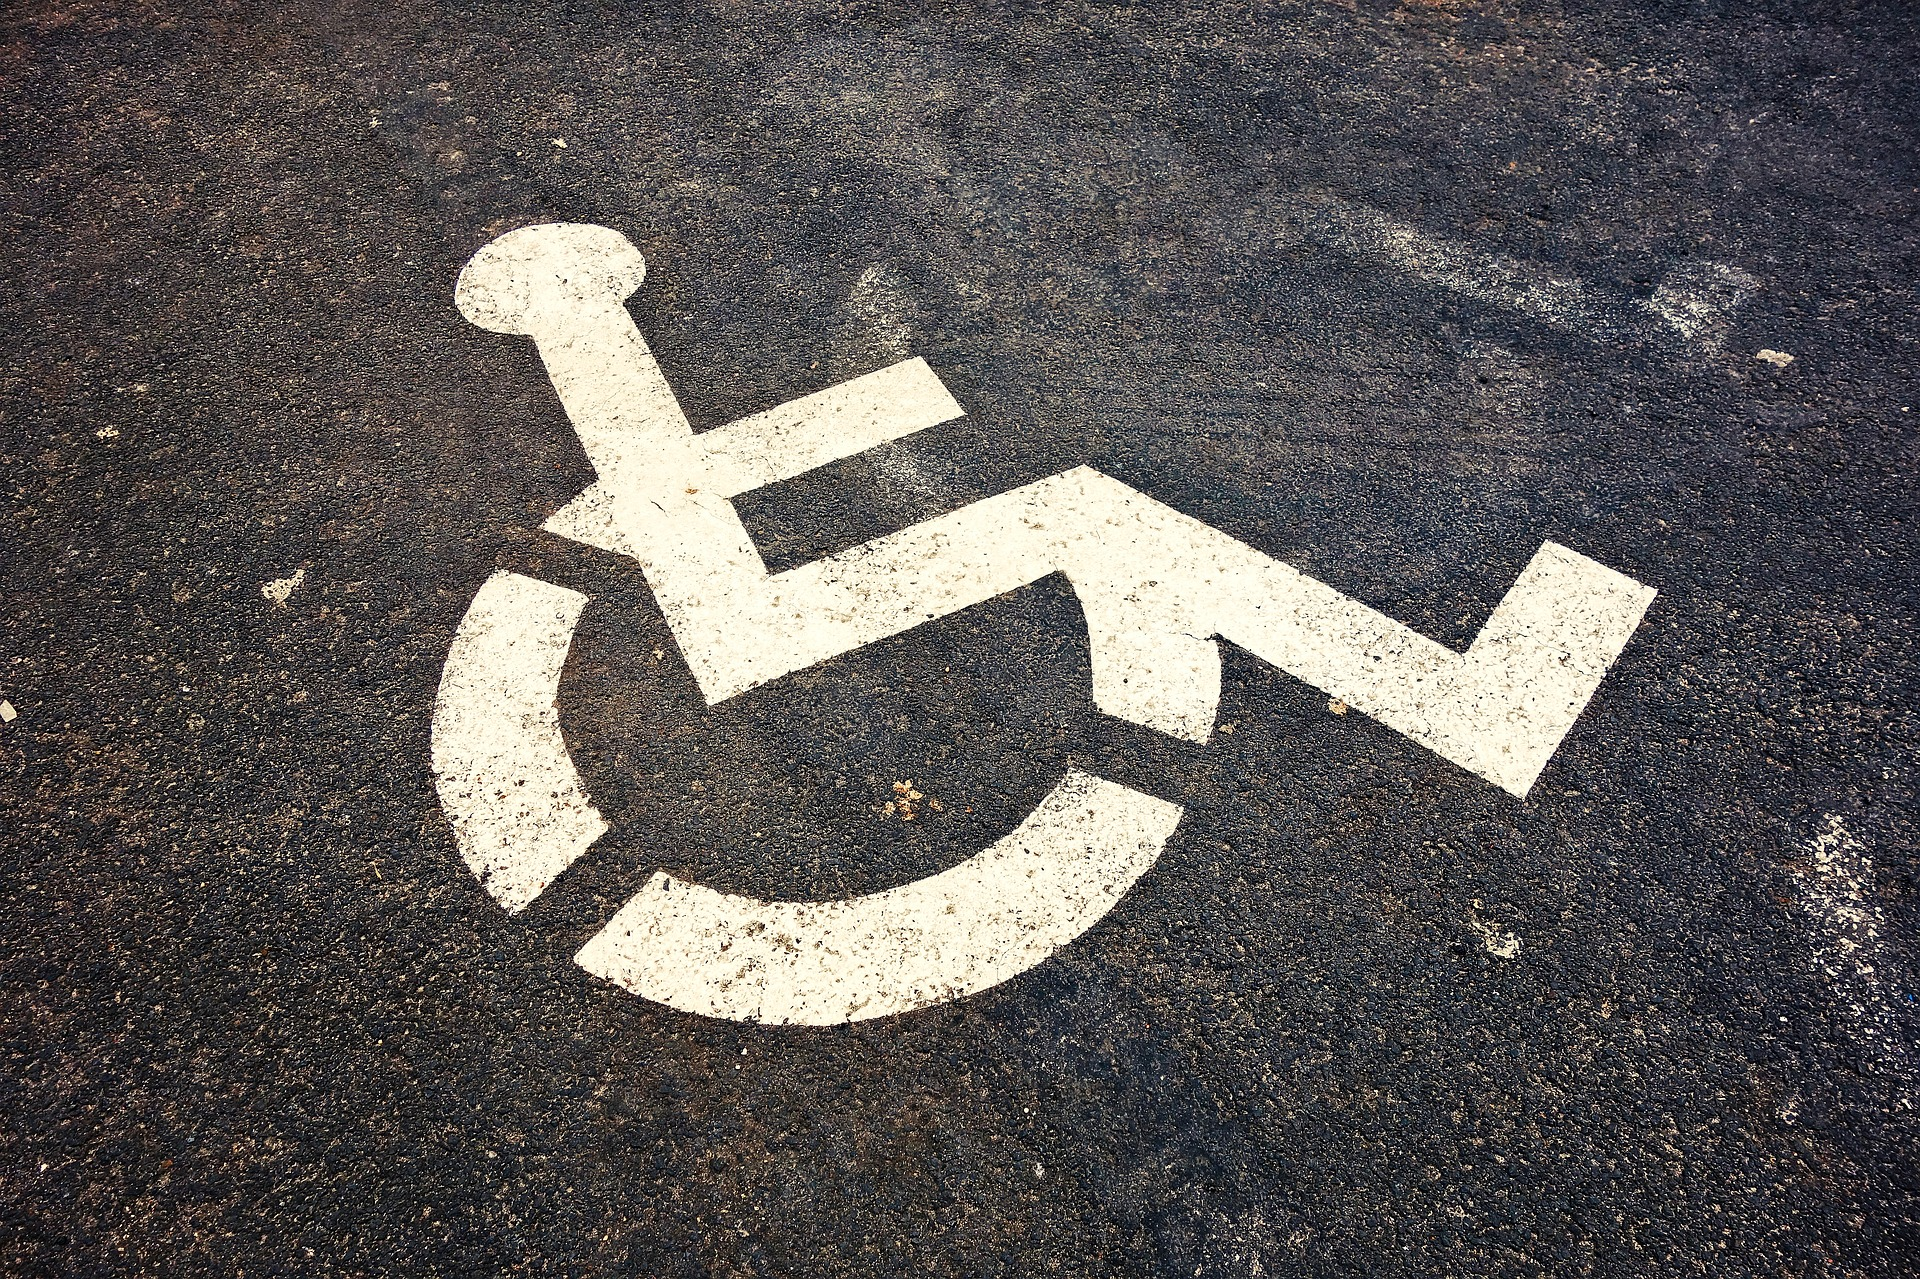 Wheelchair symbol painted on the ground